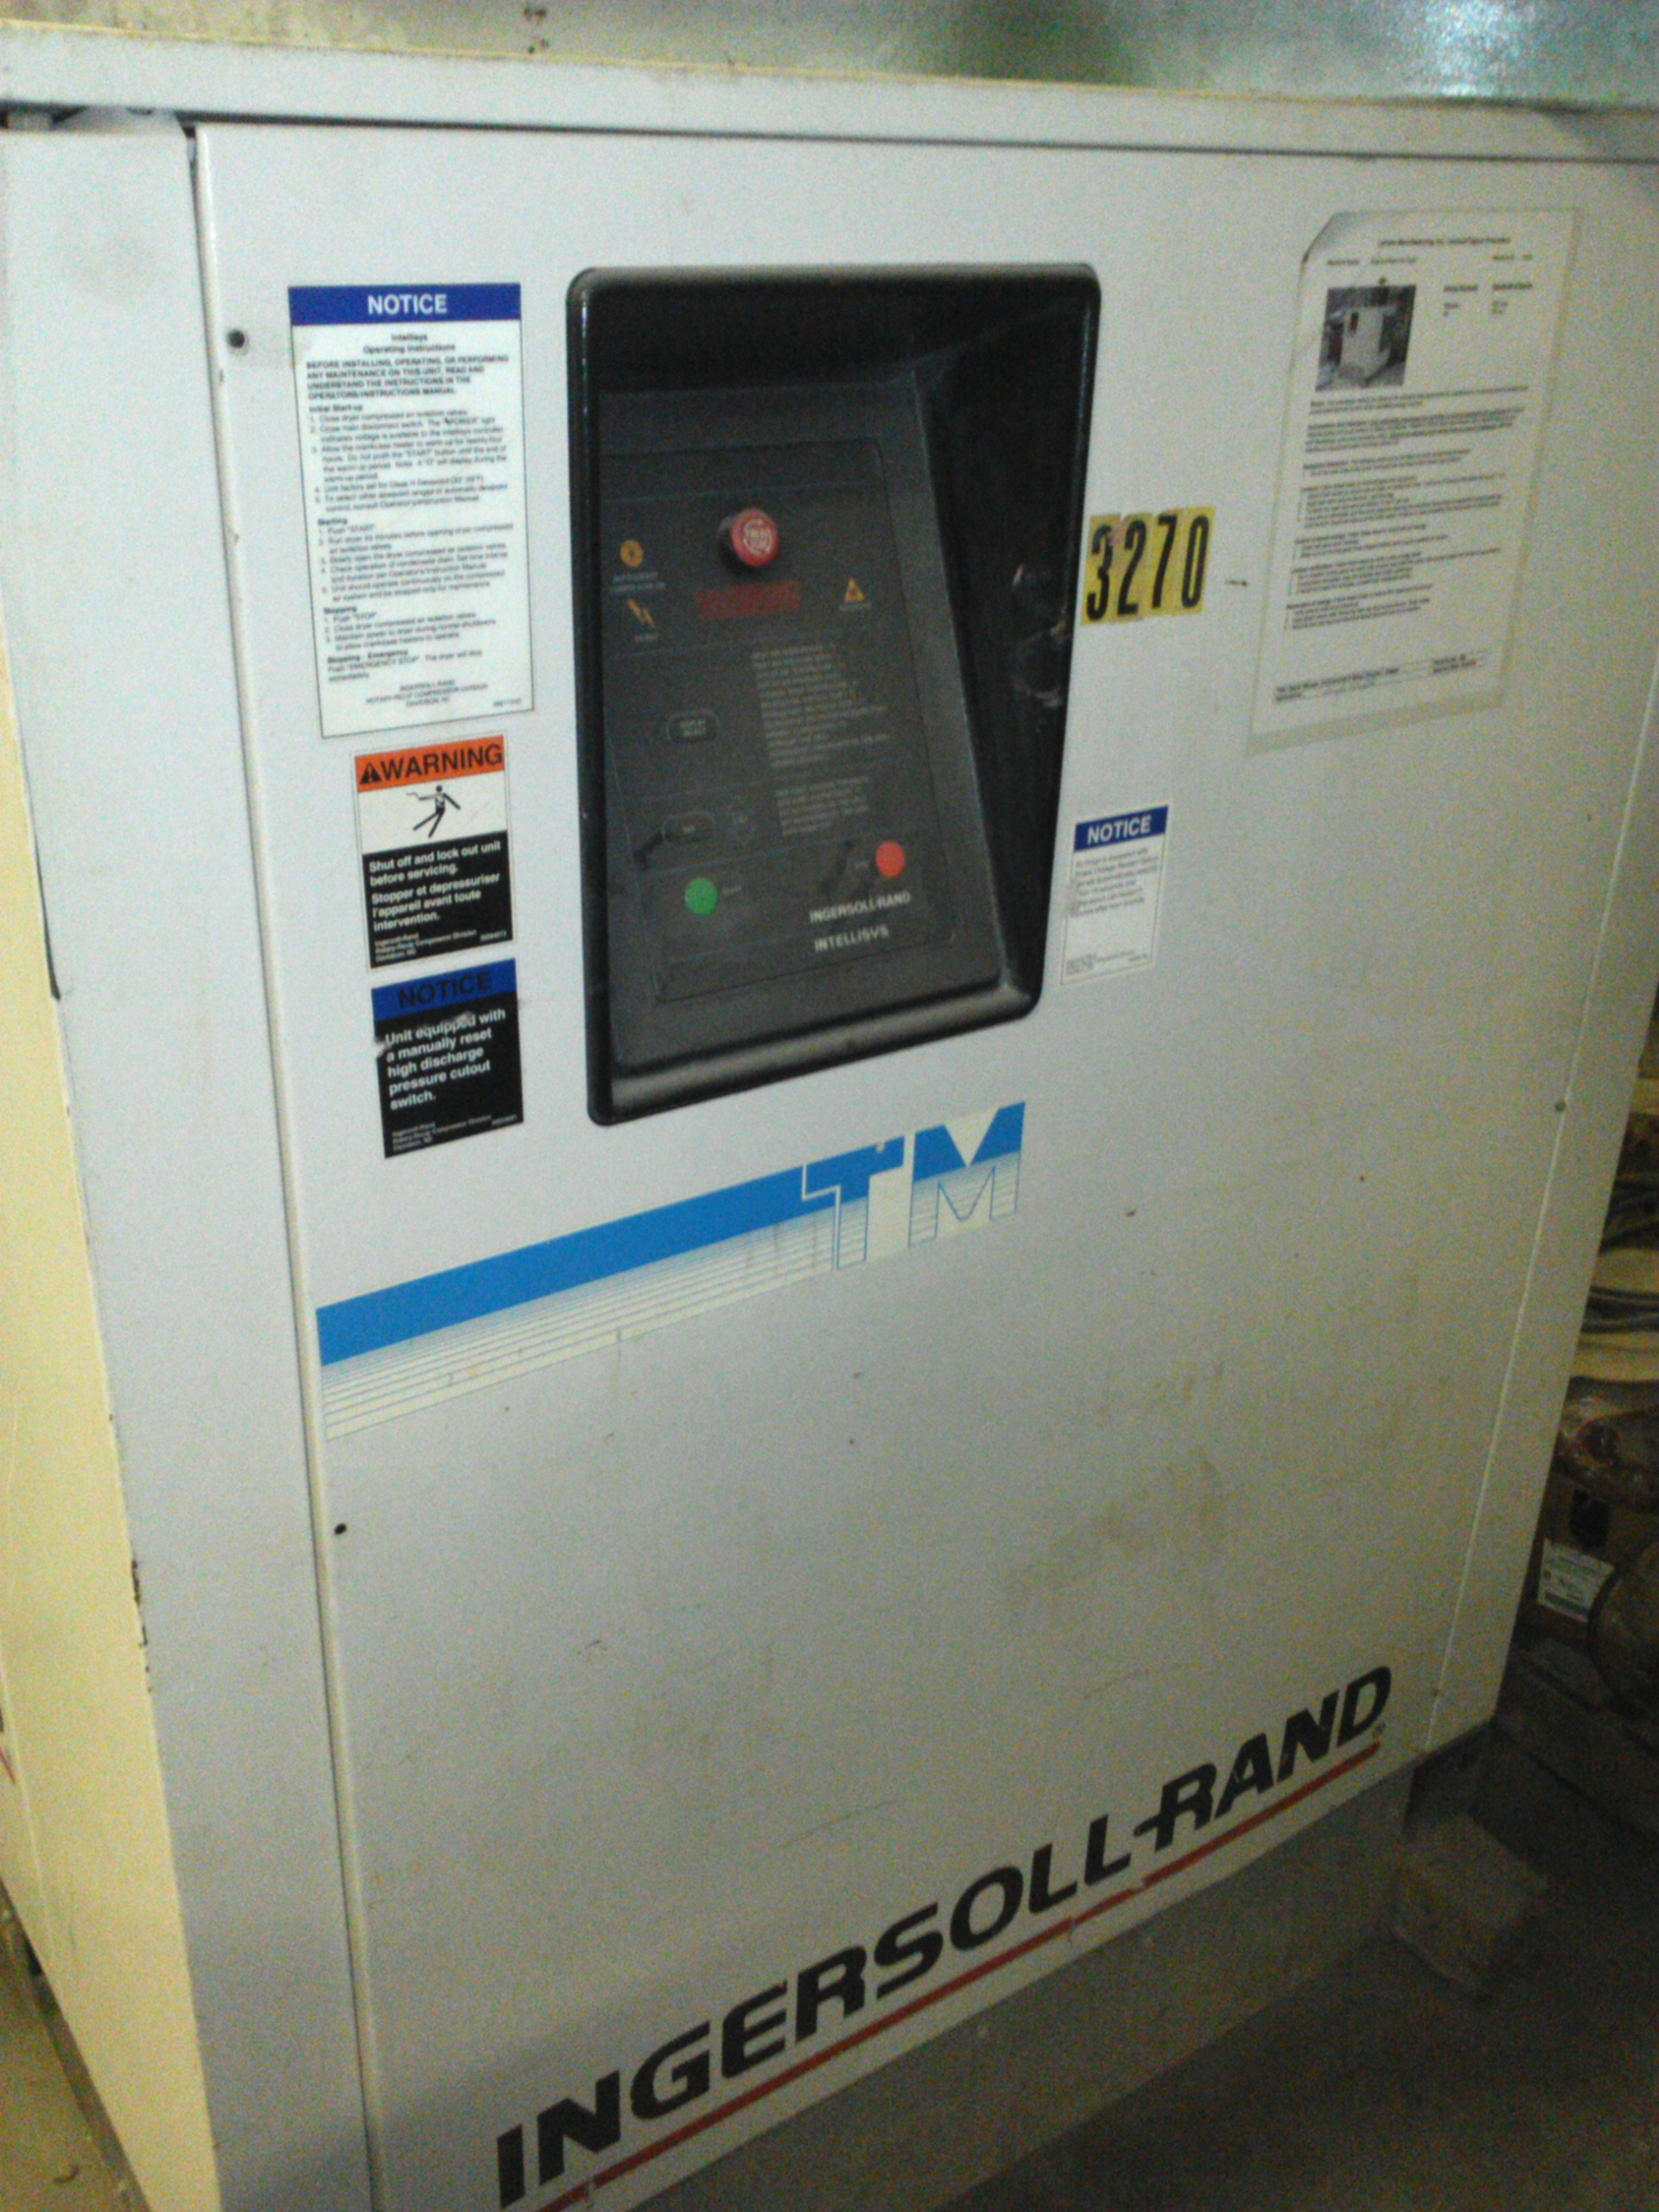 1 - PREOWNED INGERSOLL RAND THERMAL MASS REFRIGERATED AIR <br>DRYER, MODEL #: TM400, S/N: 944TM997, YEAR: 1994